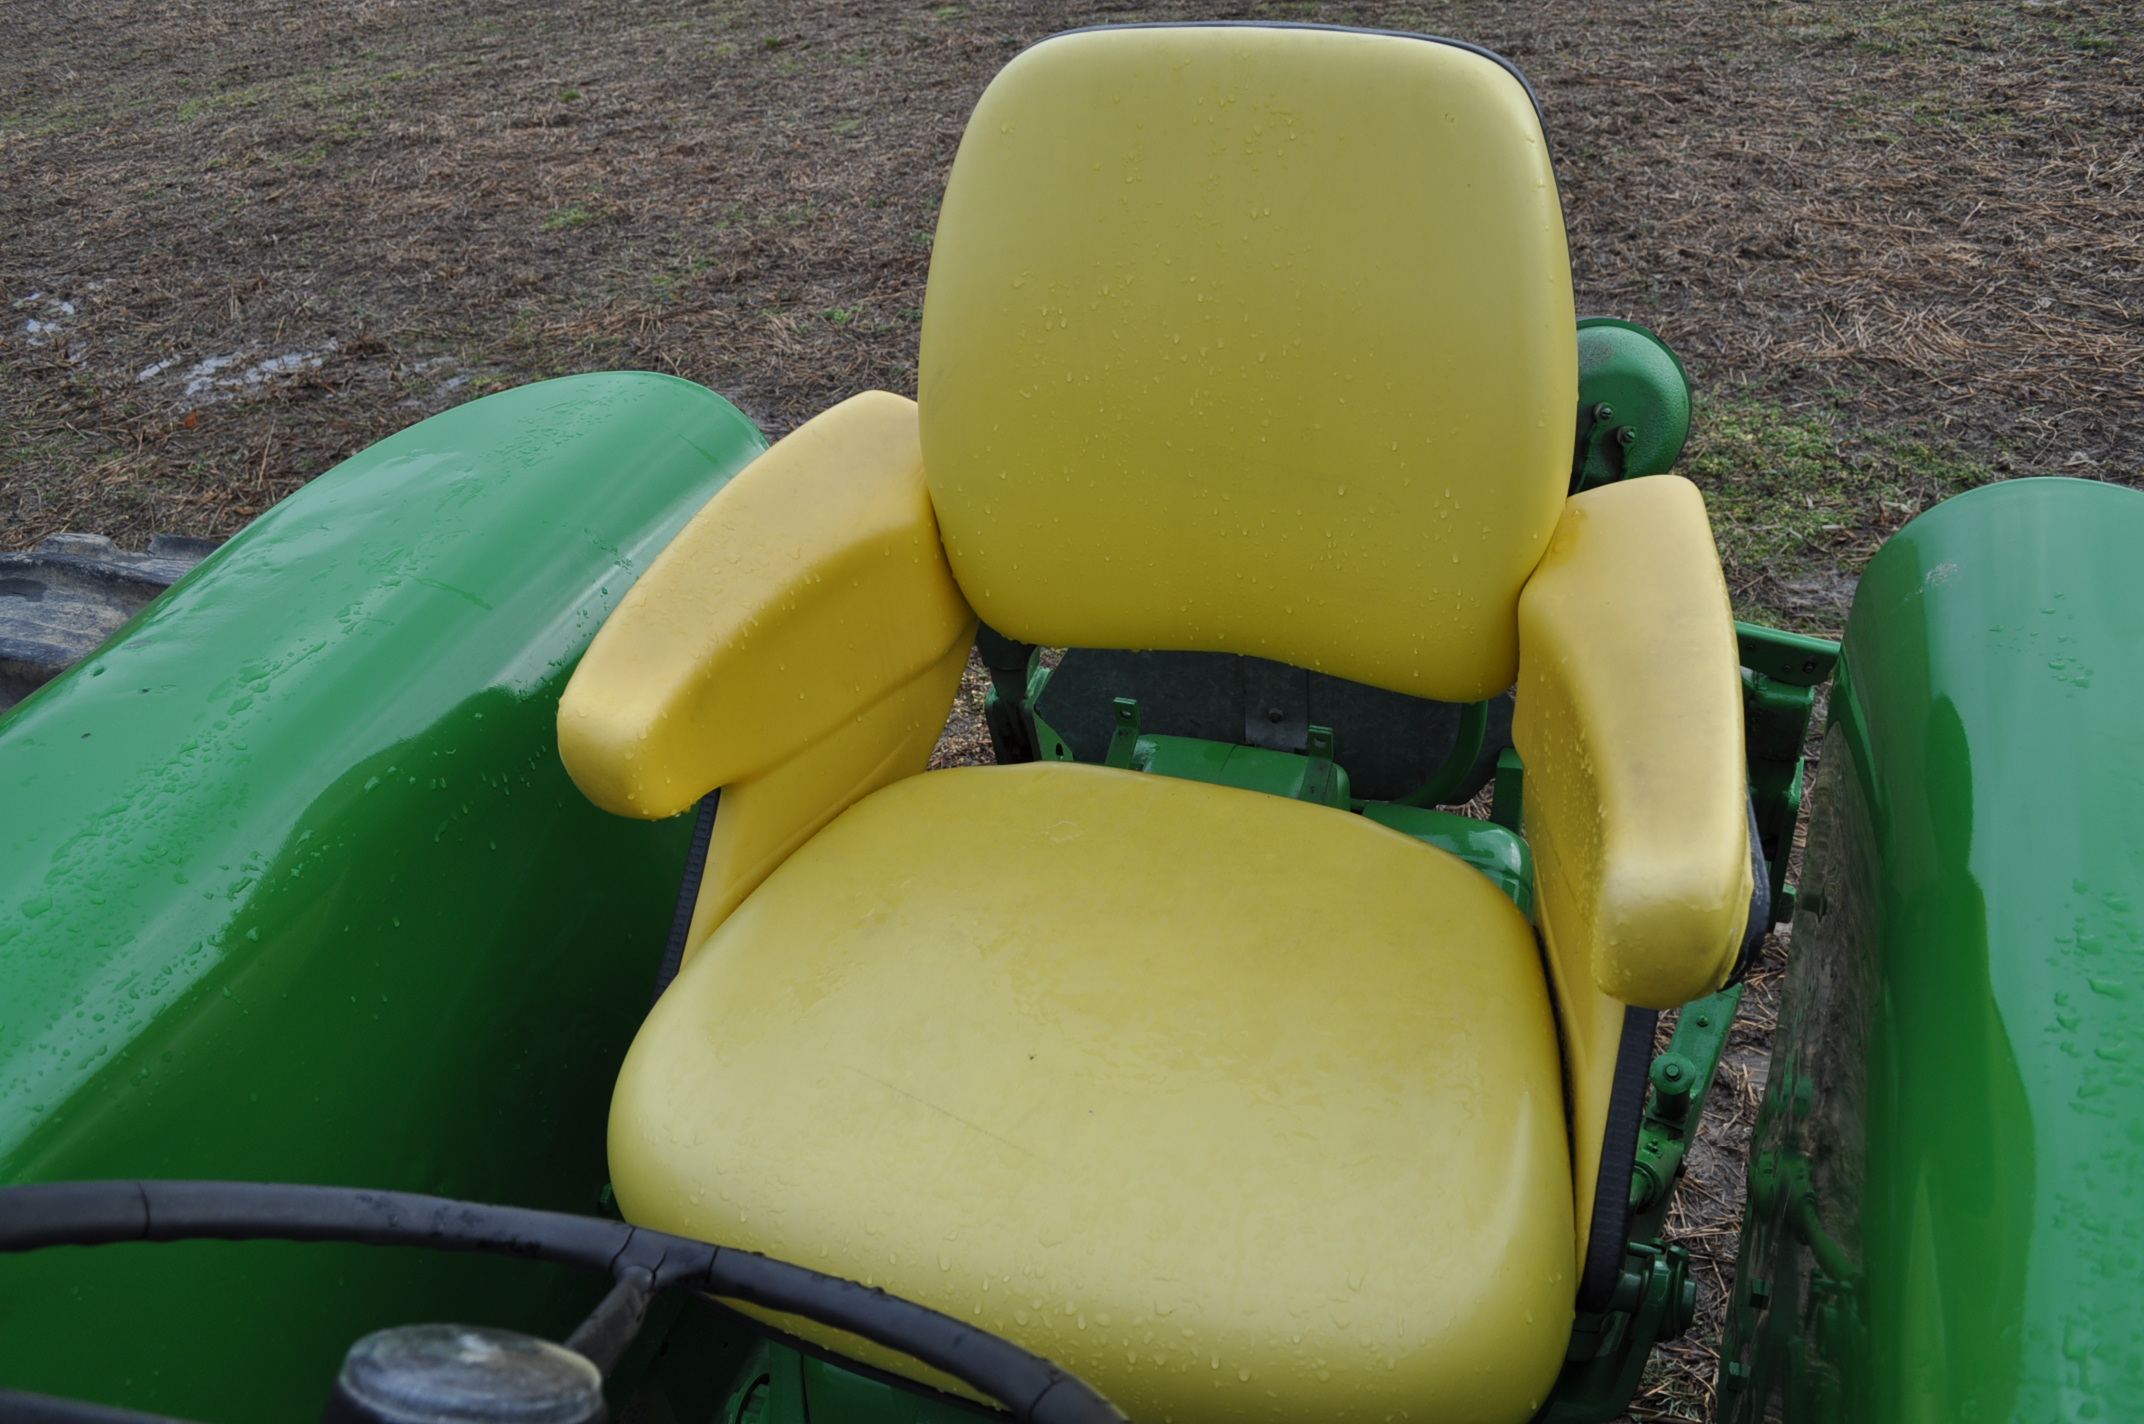 John Deere 3020 tractor, diesel, 18.4-34 rear, clamp on duals, 11L-15 narrow front, Syncro, 2 - Image 13 of 15